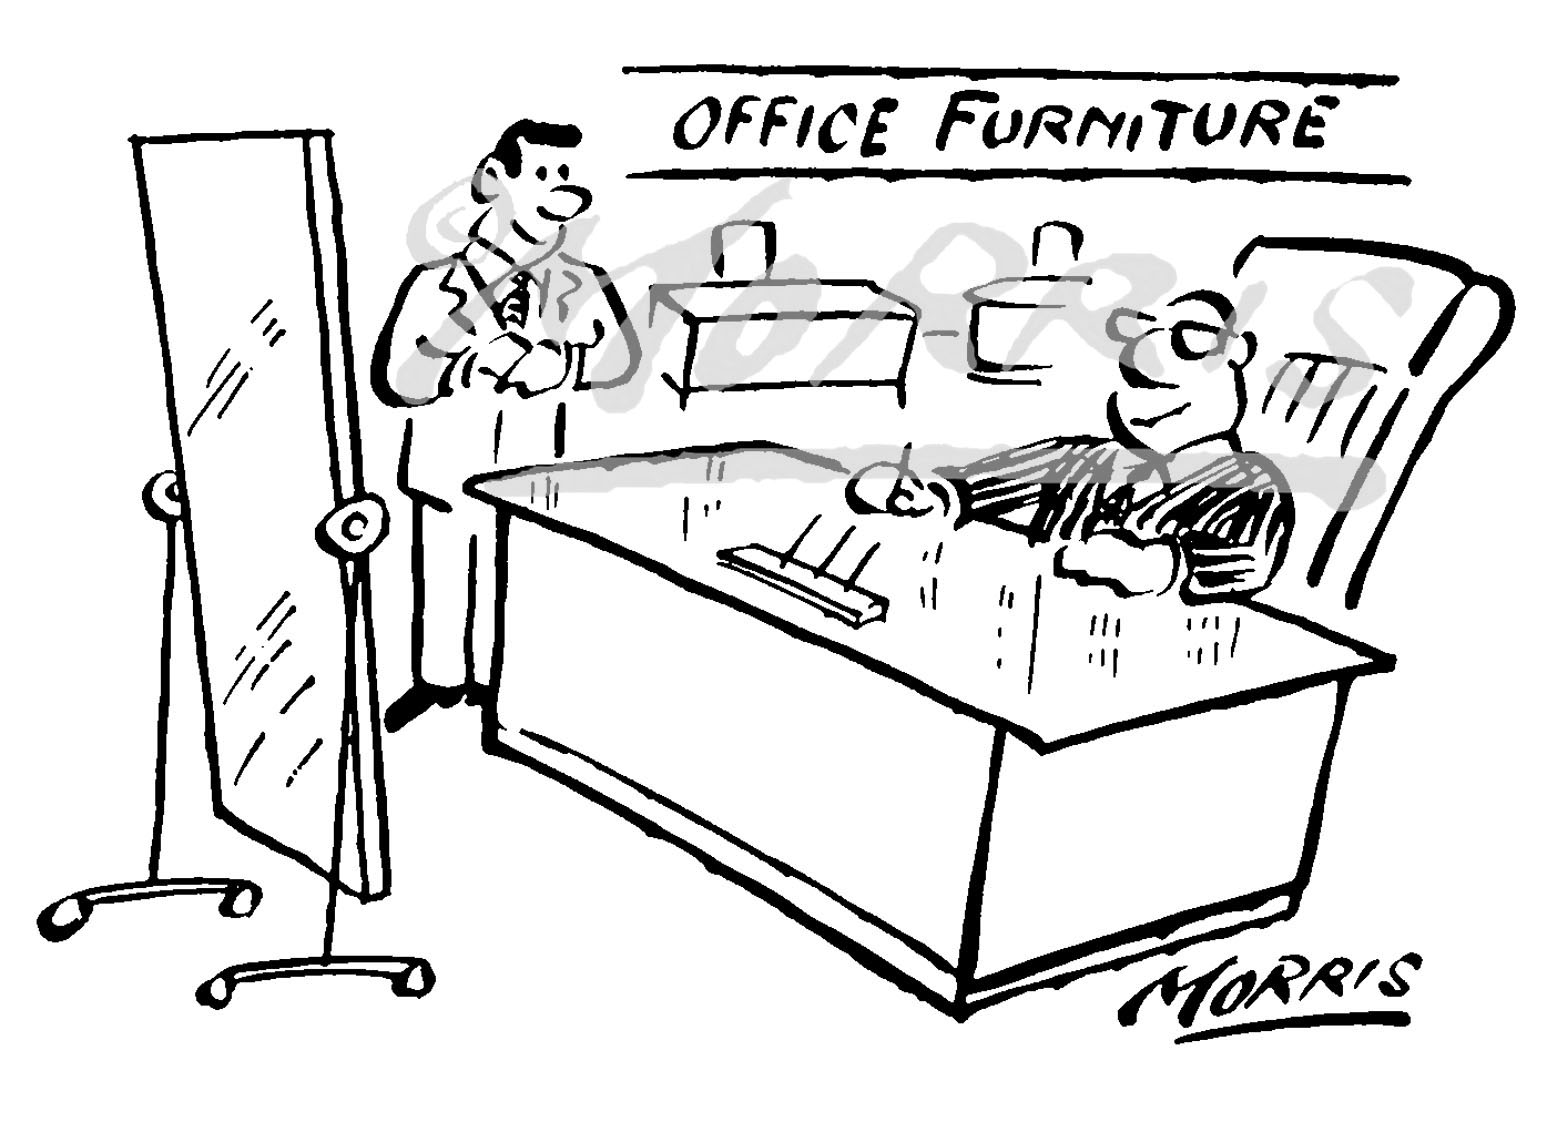 Office furniture cartoon Ref: 1620bw